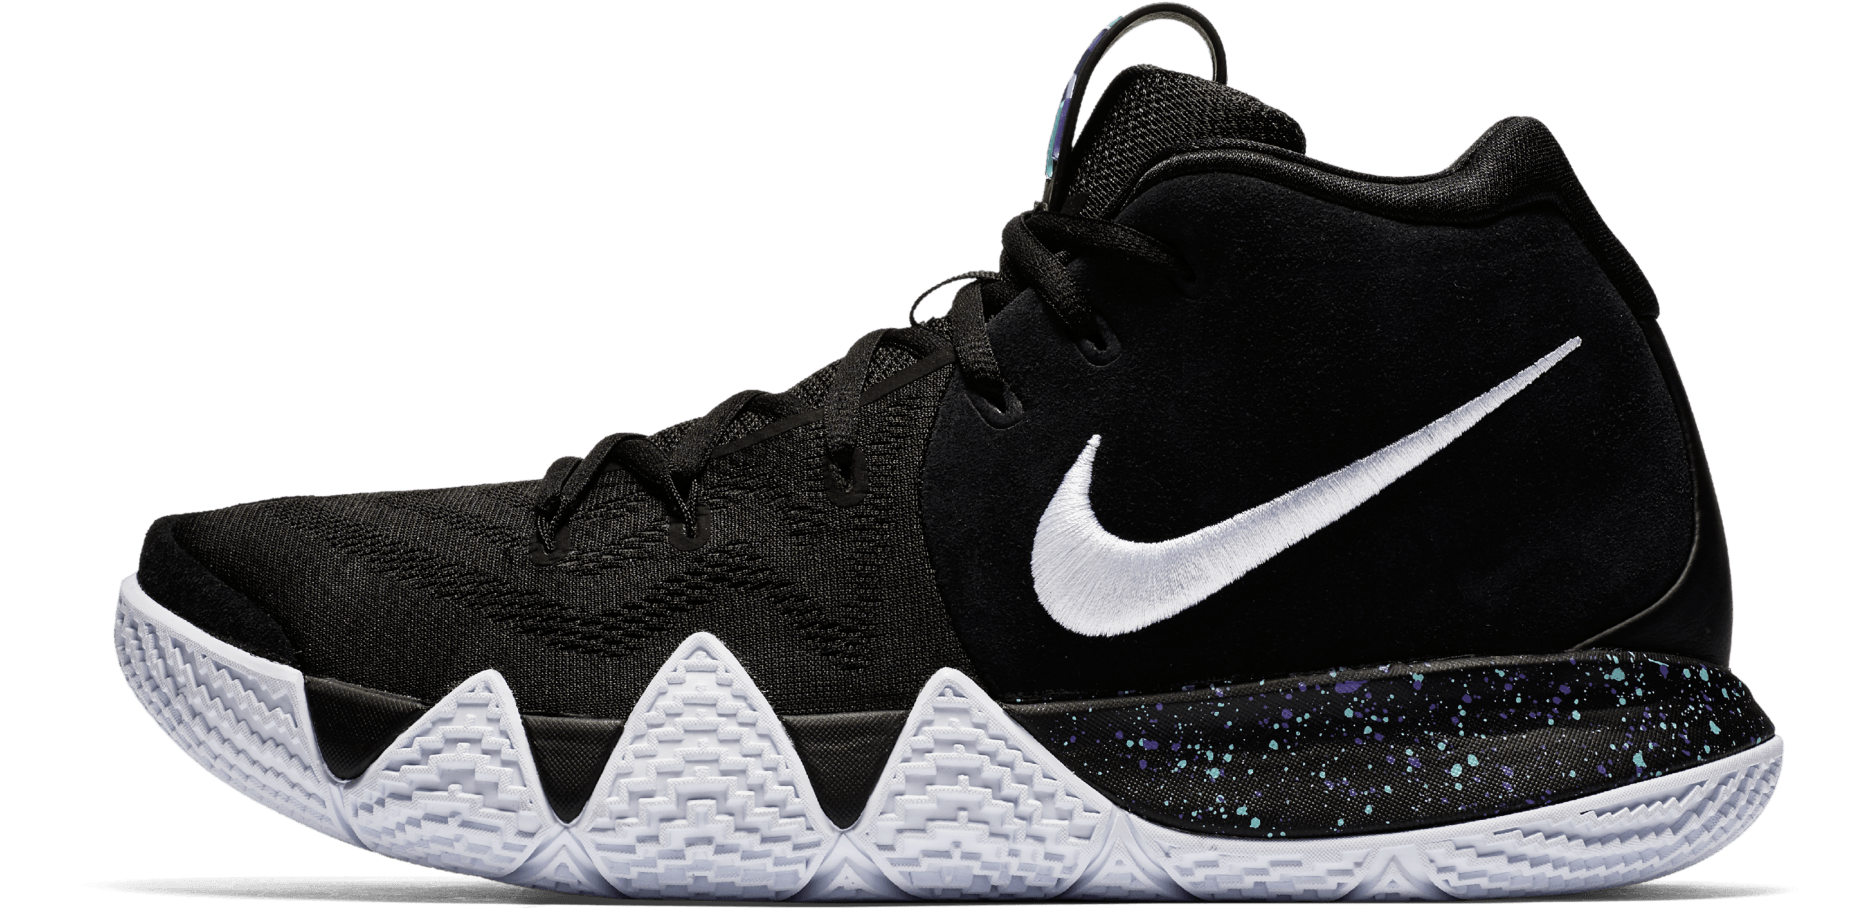 conectar armario convertible  Nike Kyrie 4 Performance Review